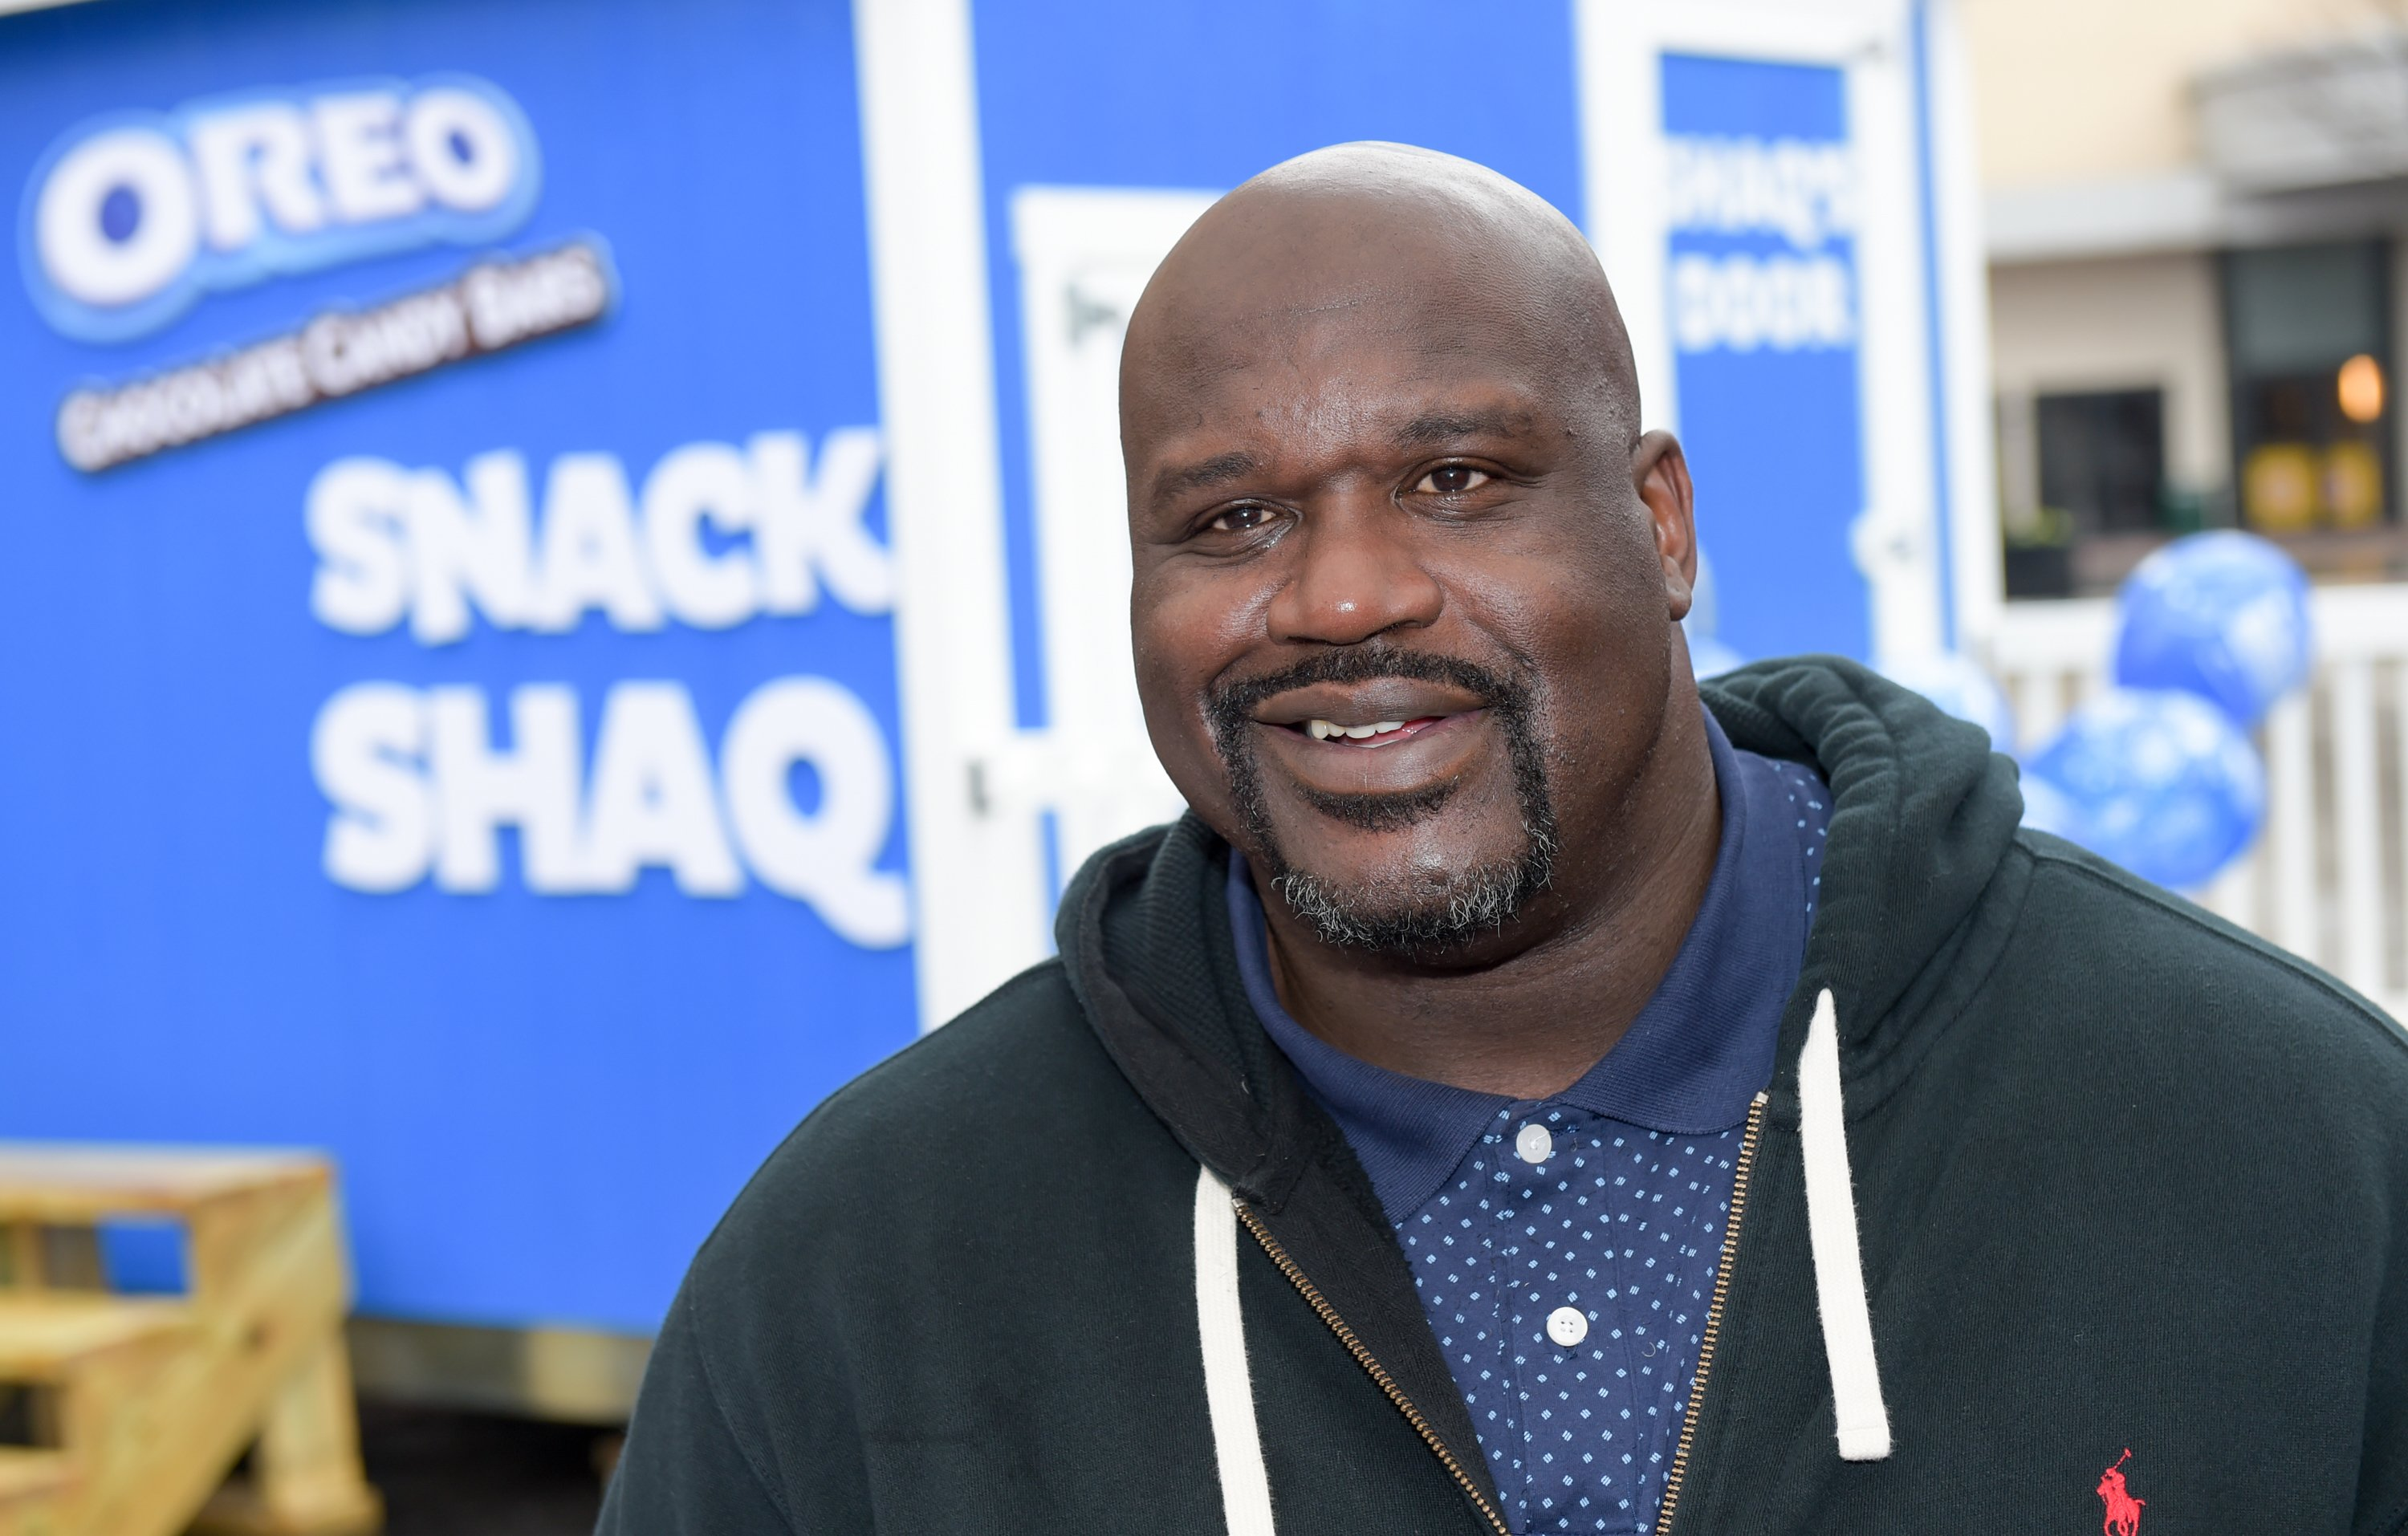 Shaquille ONeal gives away 1 million free OREO Chocolate Candy Bars on March 6, 2018 | Photo: GettyImages